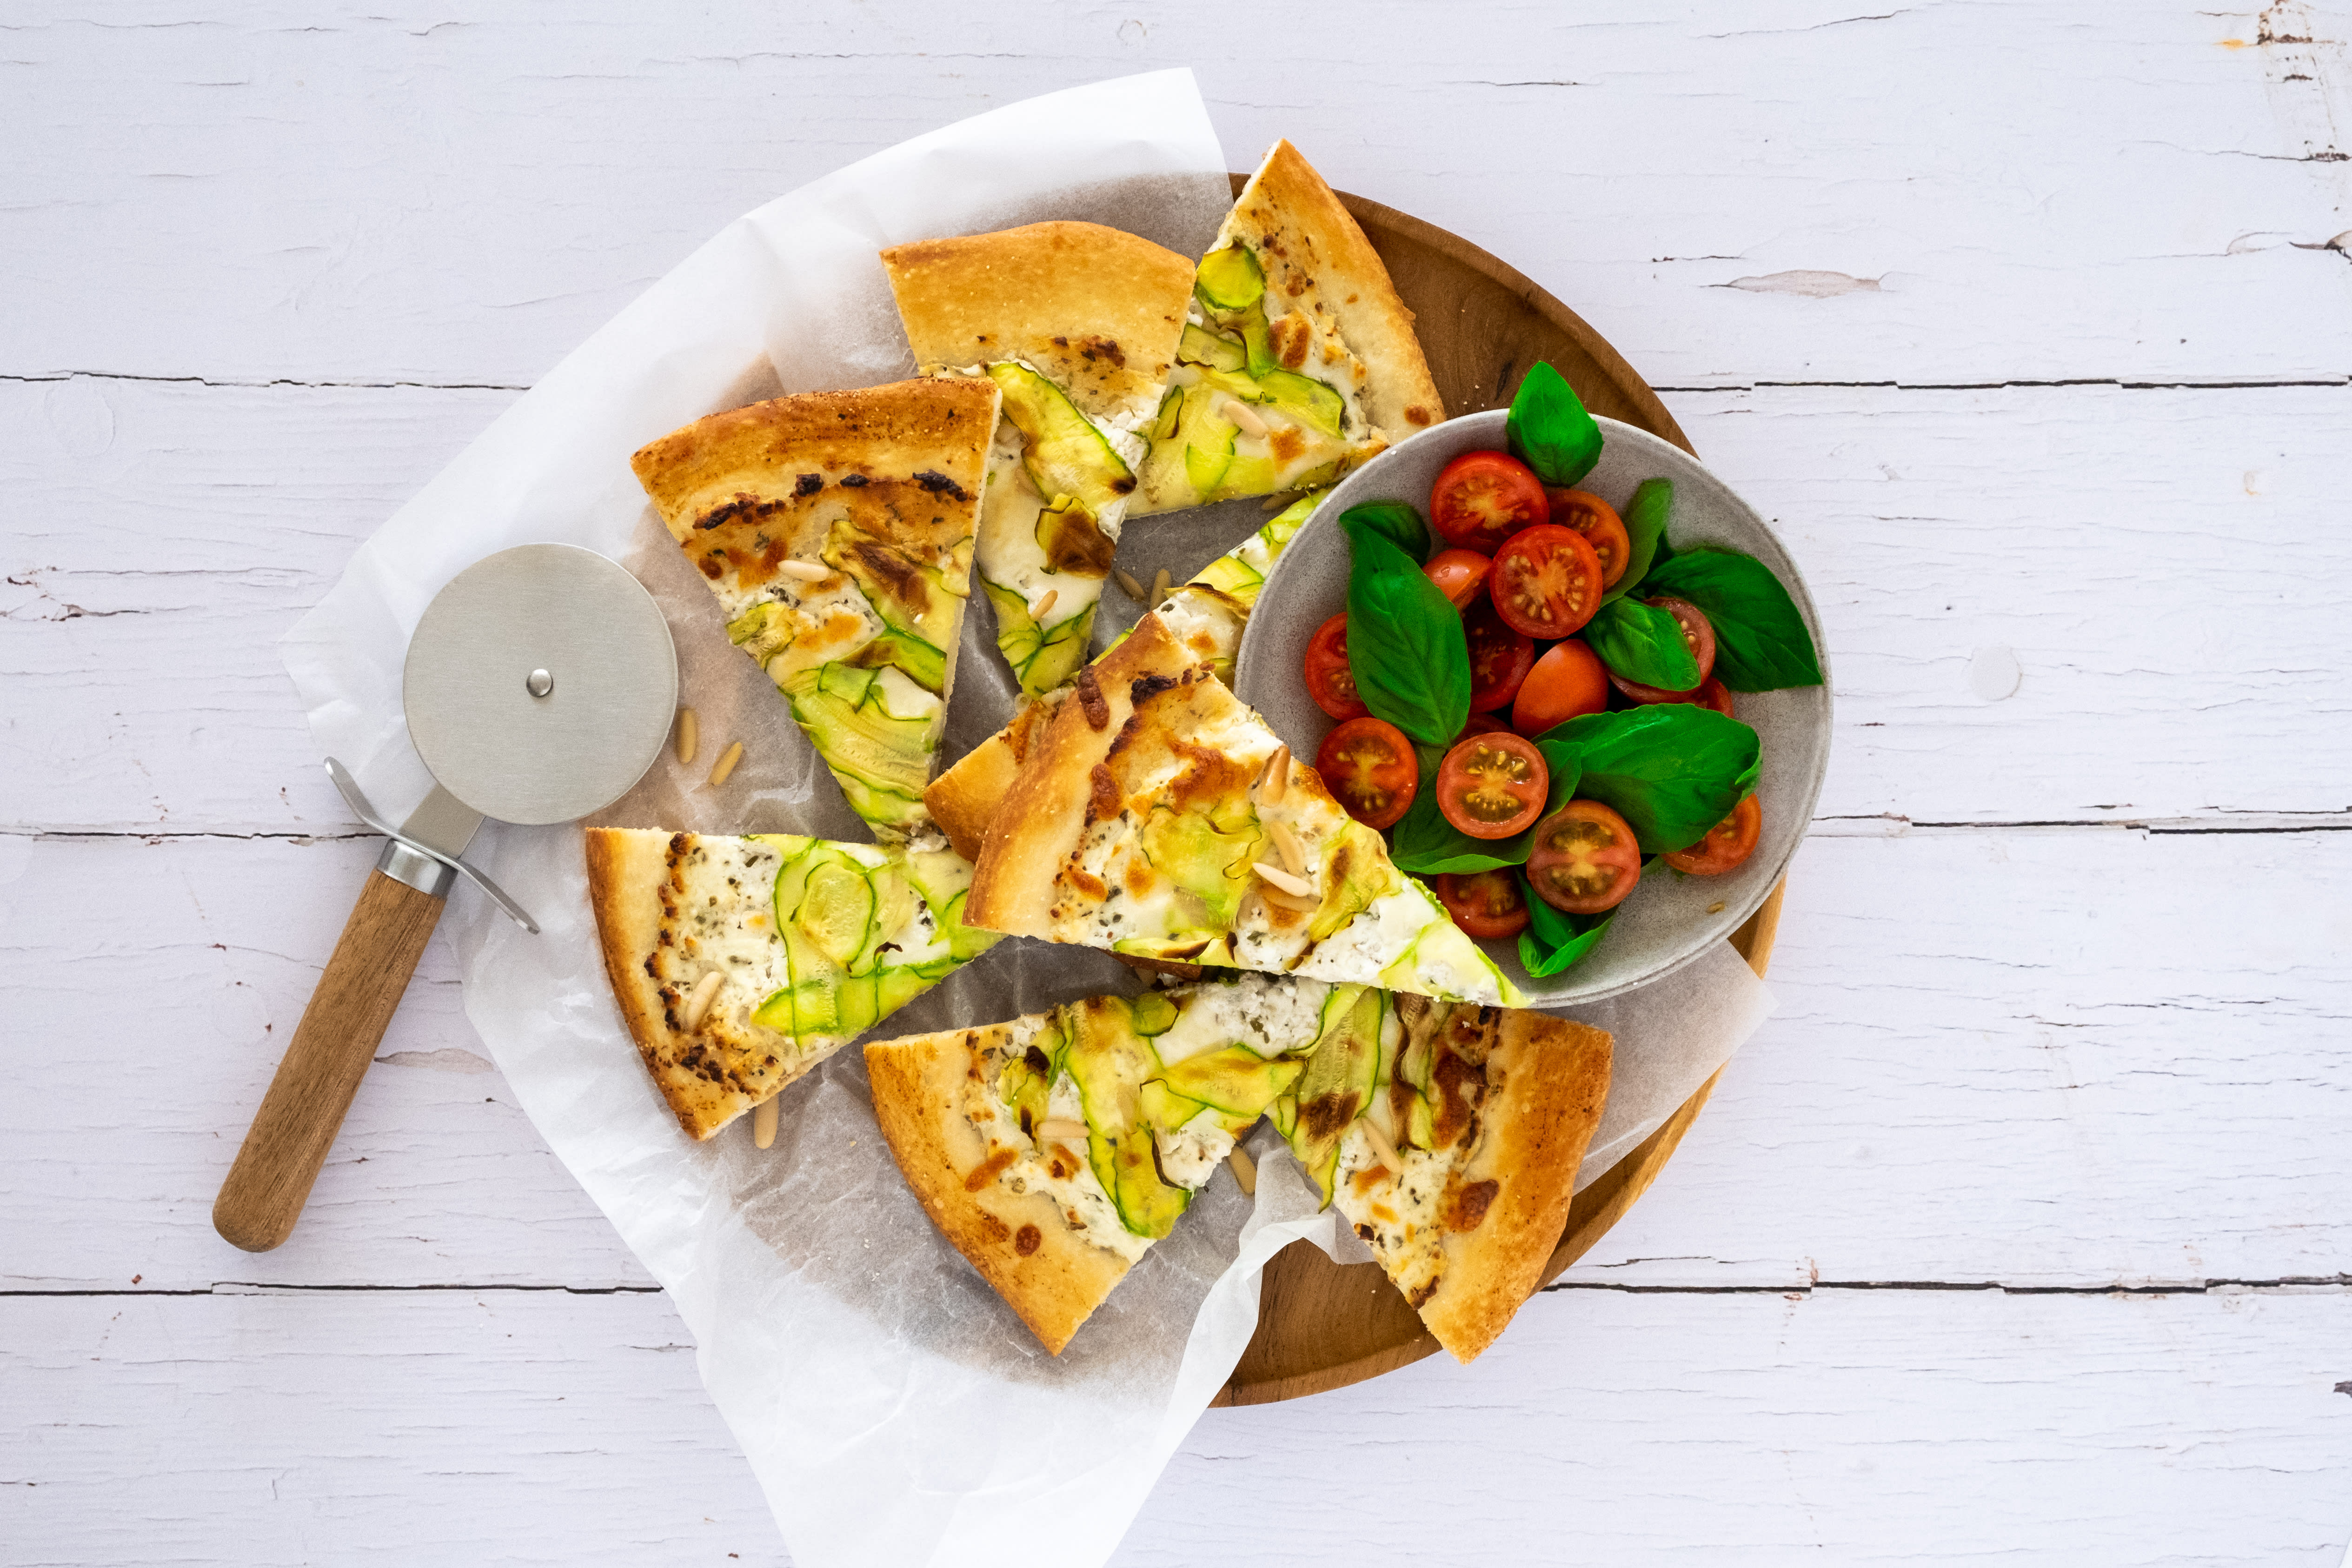 Ricotta and Zucchini Pizza with Pine Nuts and Tomato Salad